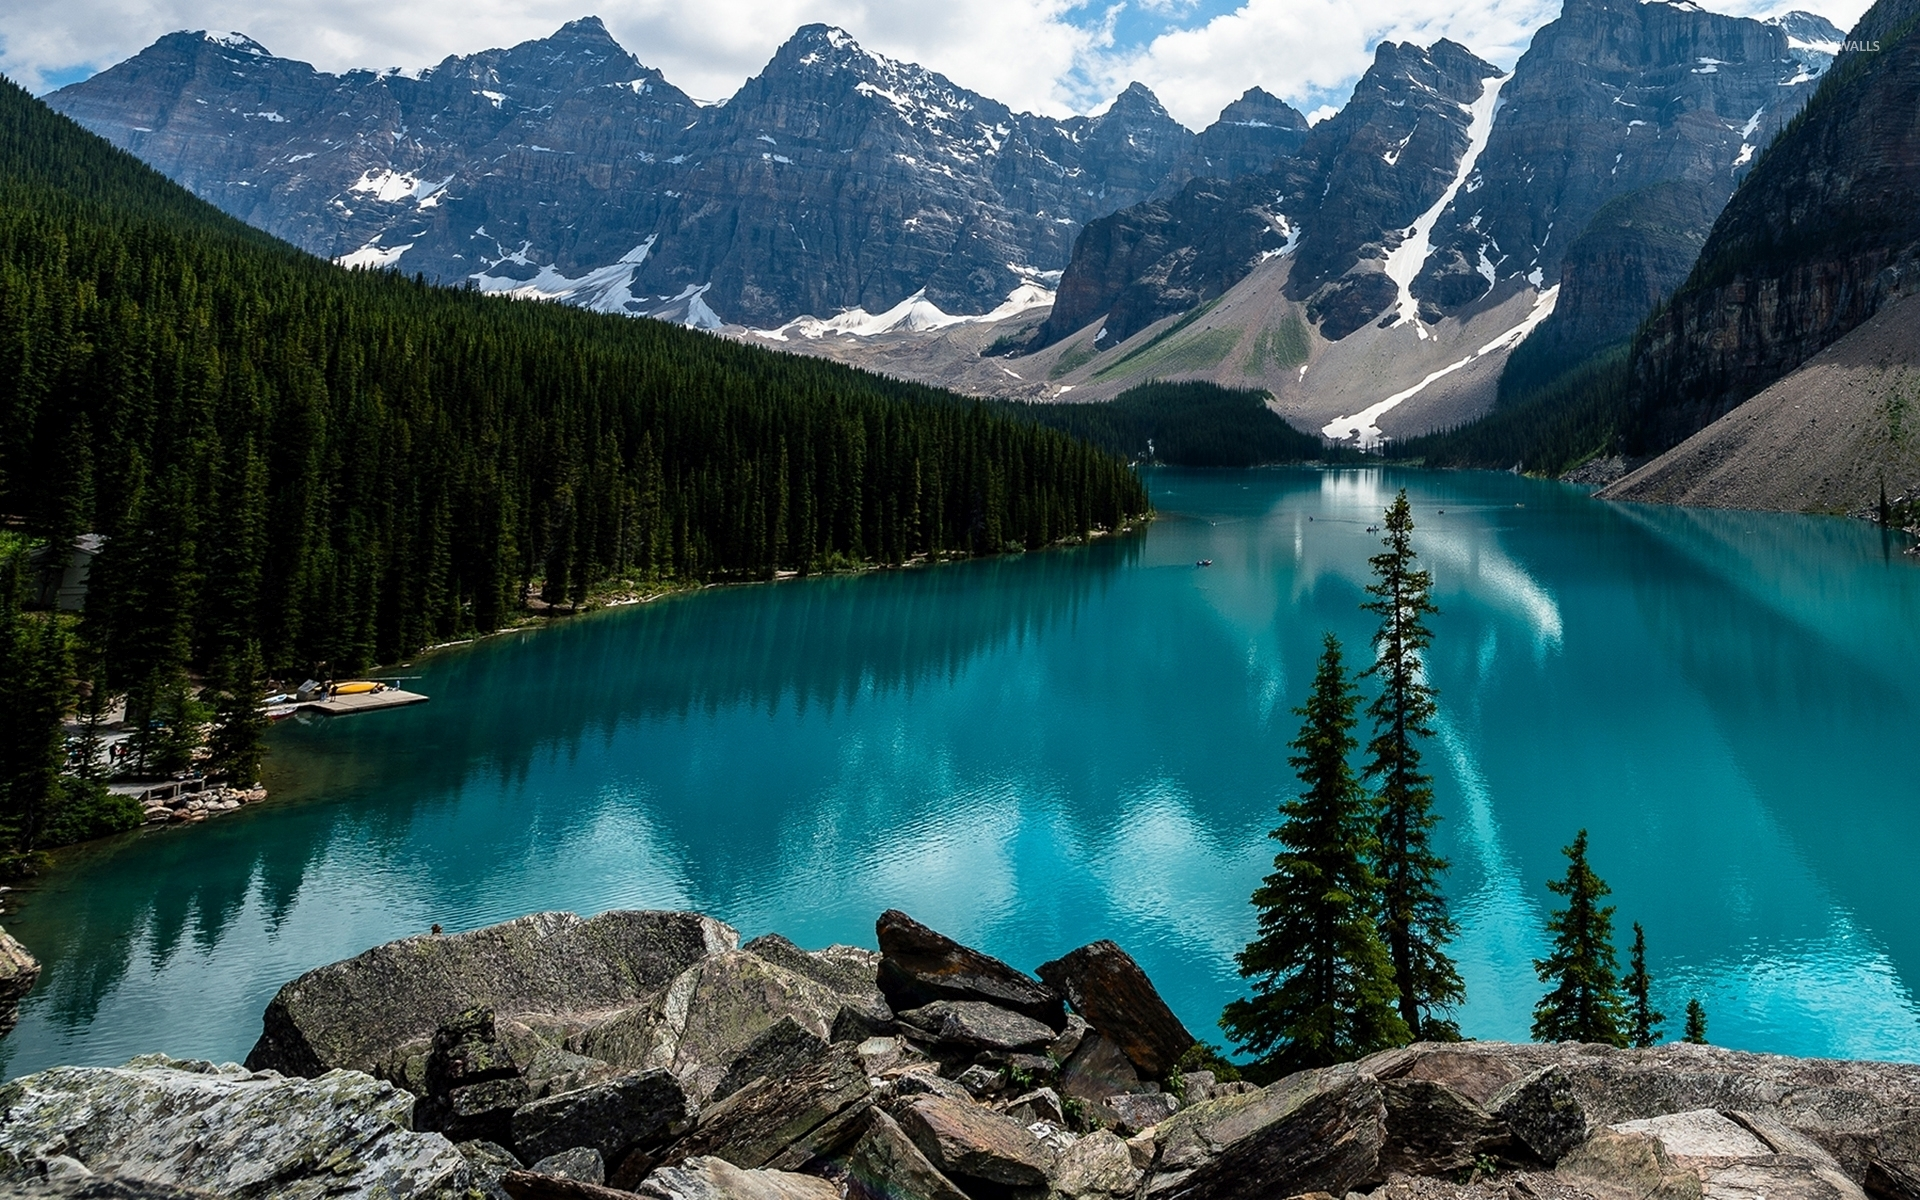 Amazing Turquoise Water In Moraine Lake Wallpaper Nature